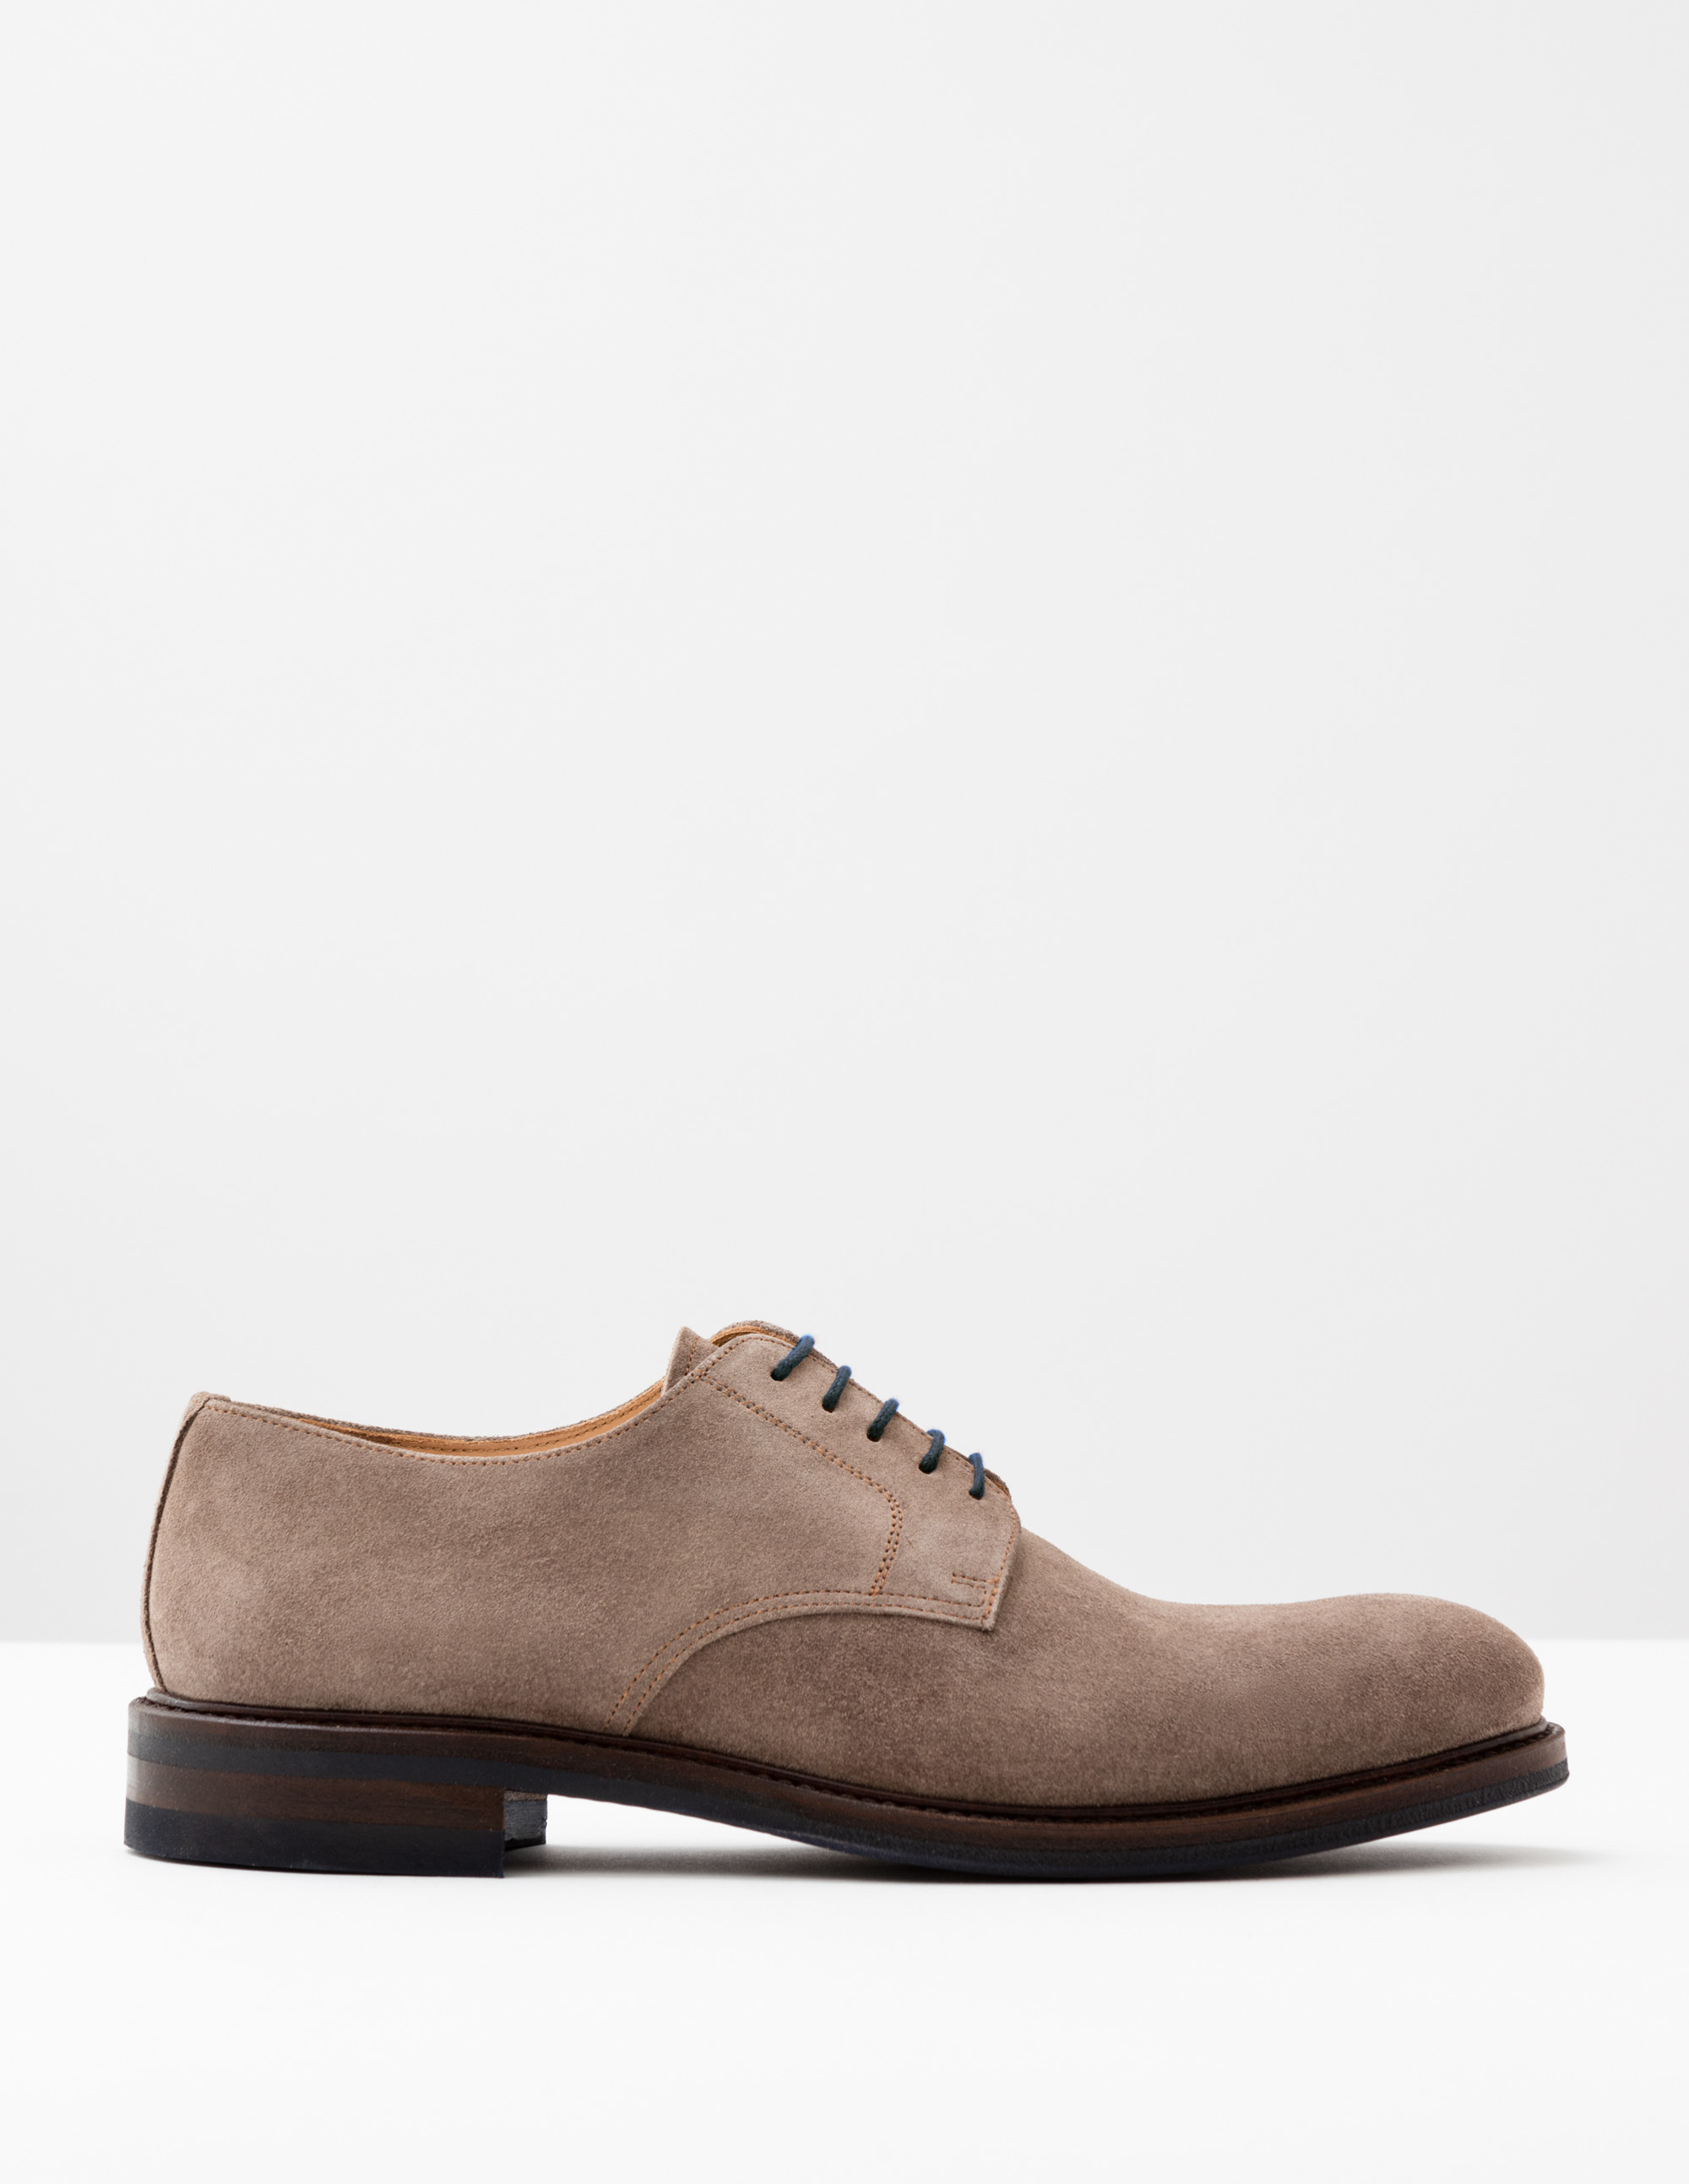 Boden Cement Suede Corby Derby Shoes